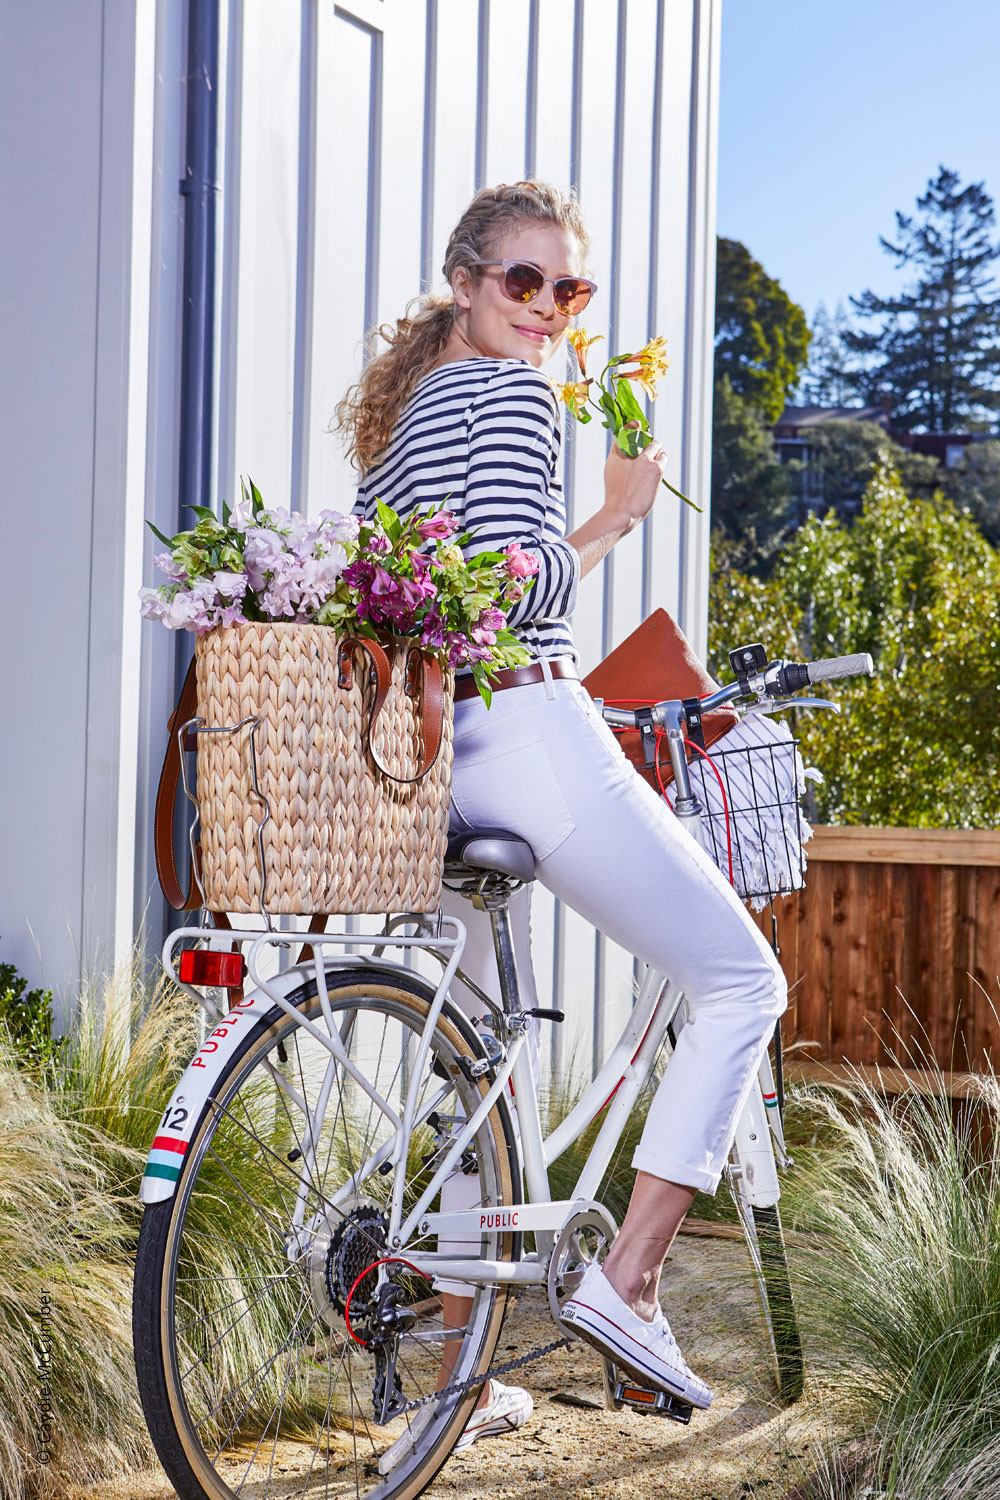 Photo of outdoor summery location of a beautiful model with the woven basket on the back of her bicycle filled with fresh flowers